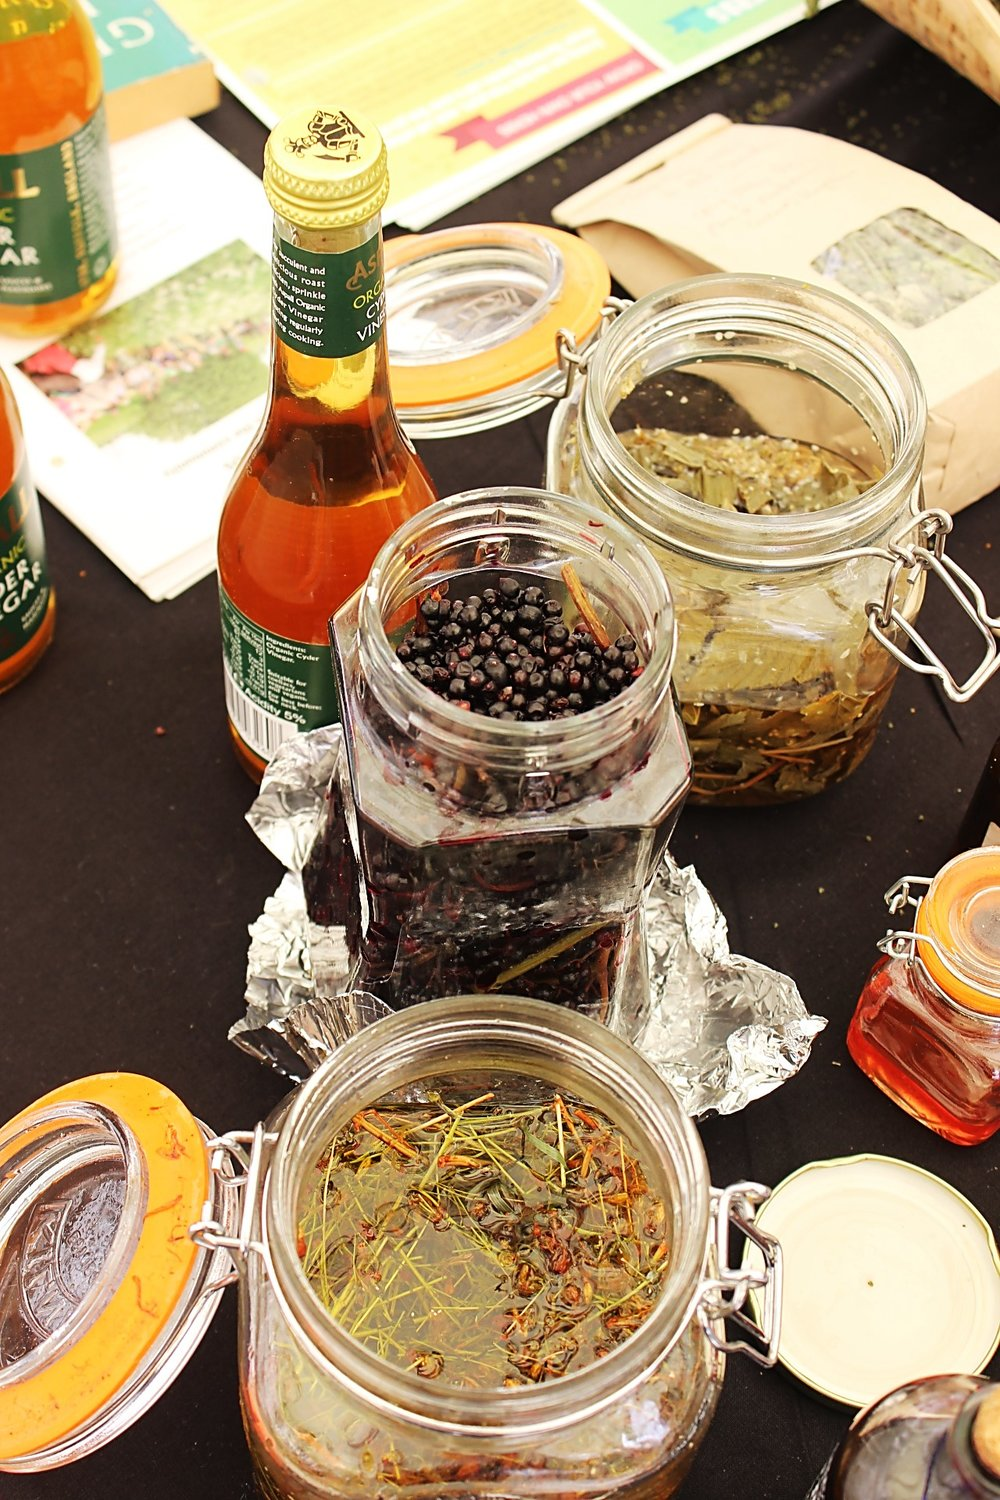 Medicinal Herb Workshop with Rasheeqa Ahmed ( www.hedgeherbs.org.uk )